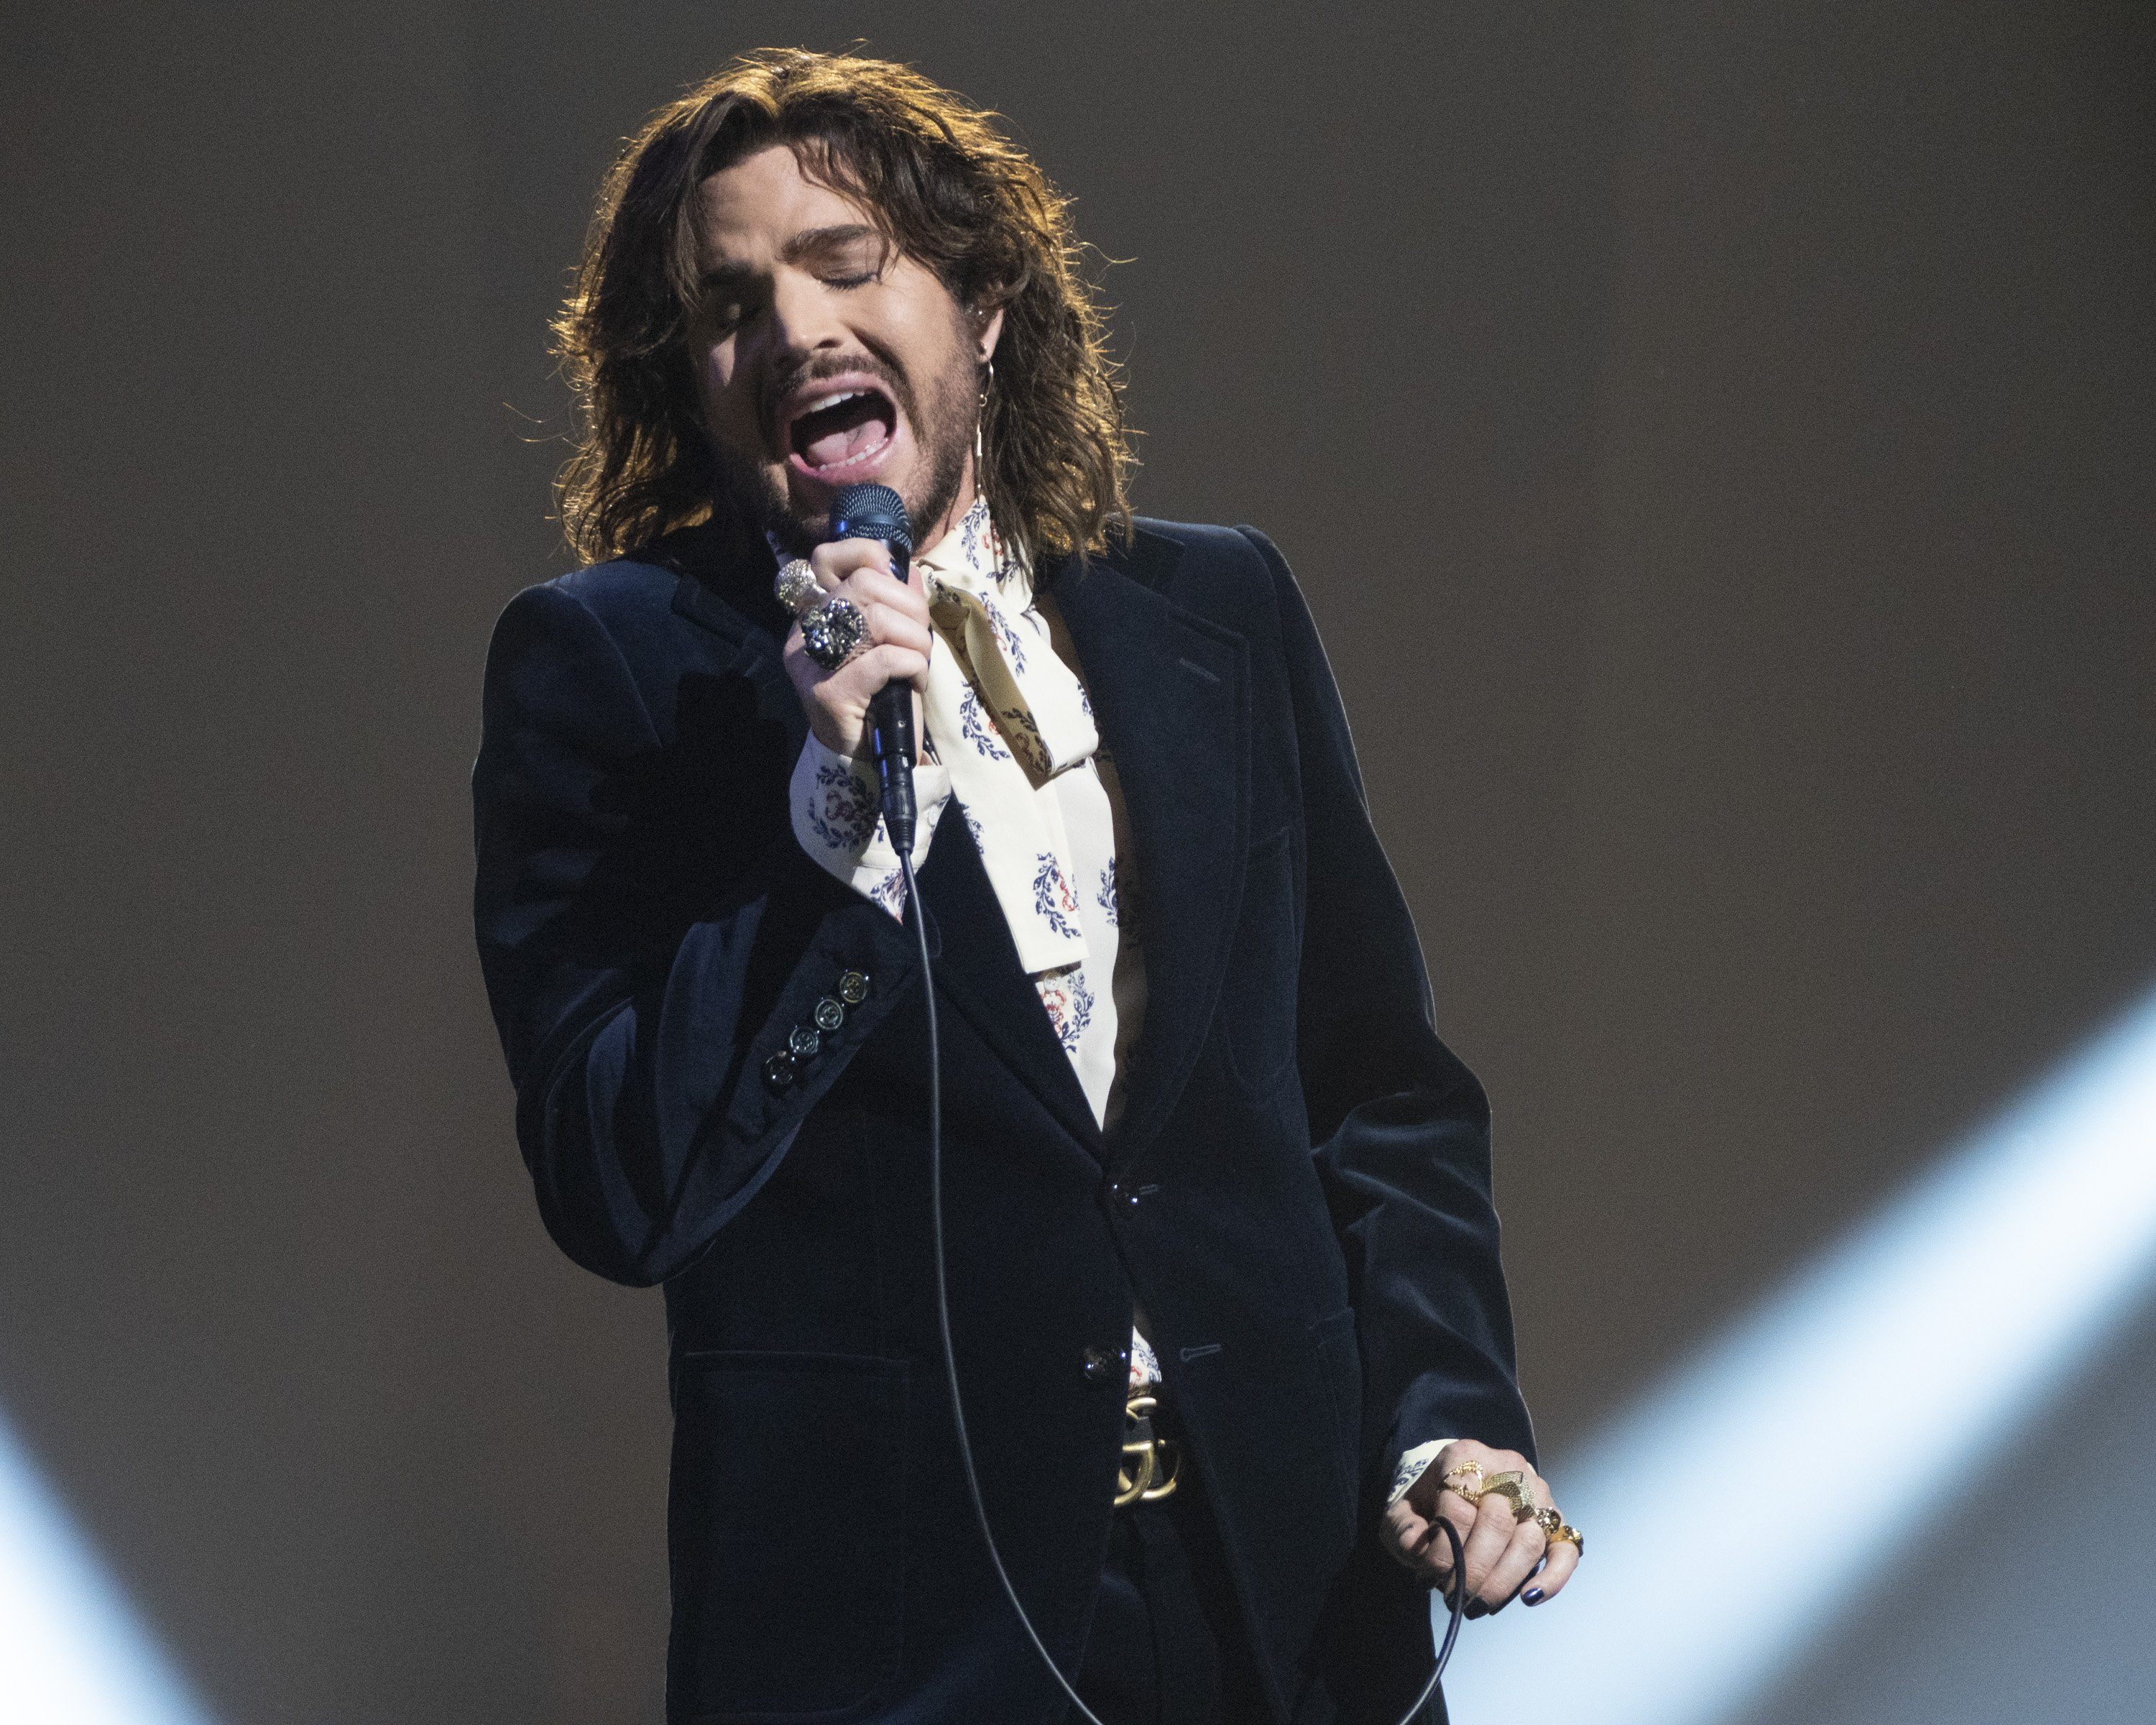 """Following a cross-country search for the next singing sensation, """"American Idol"""" rounds out its second season on Walt Disney Television via Getty Images with an epic grand finale event, featuring """"Idol""""'s Top 3 contestants. Photos: Getty Images"""